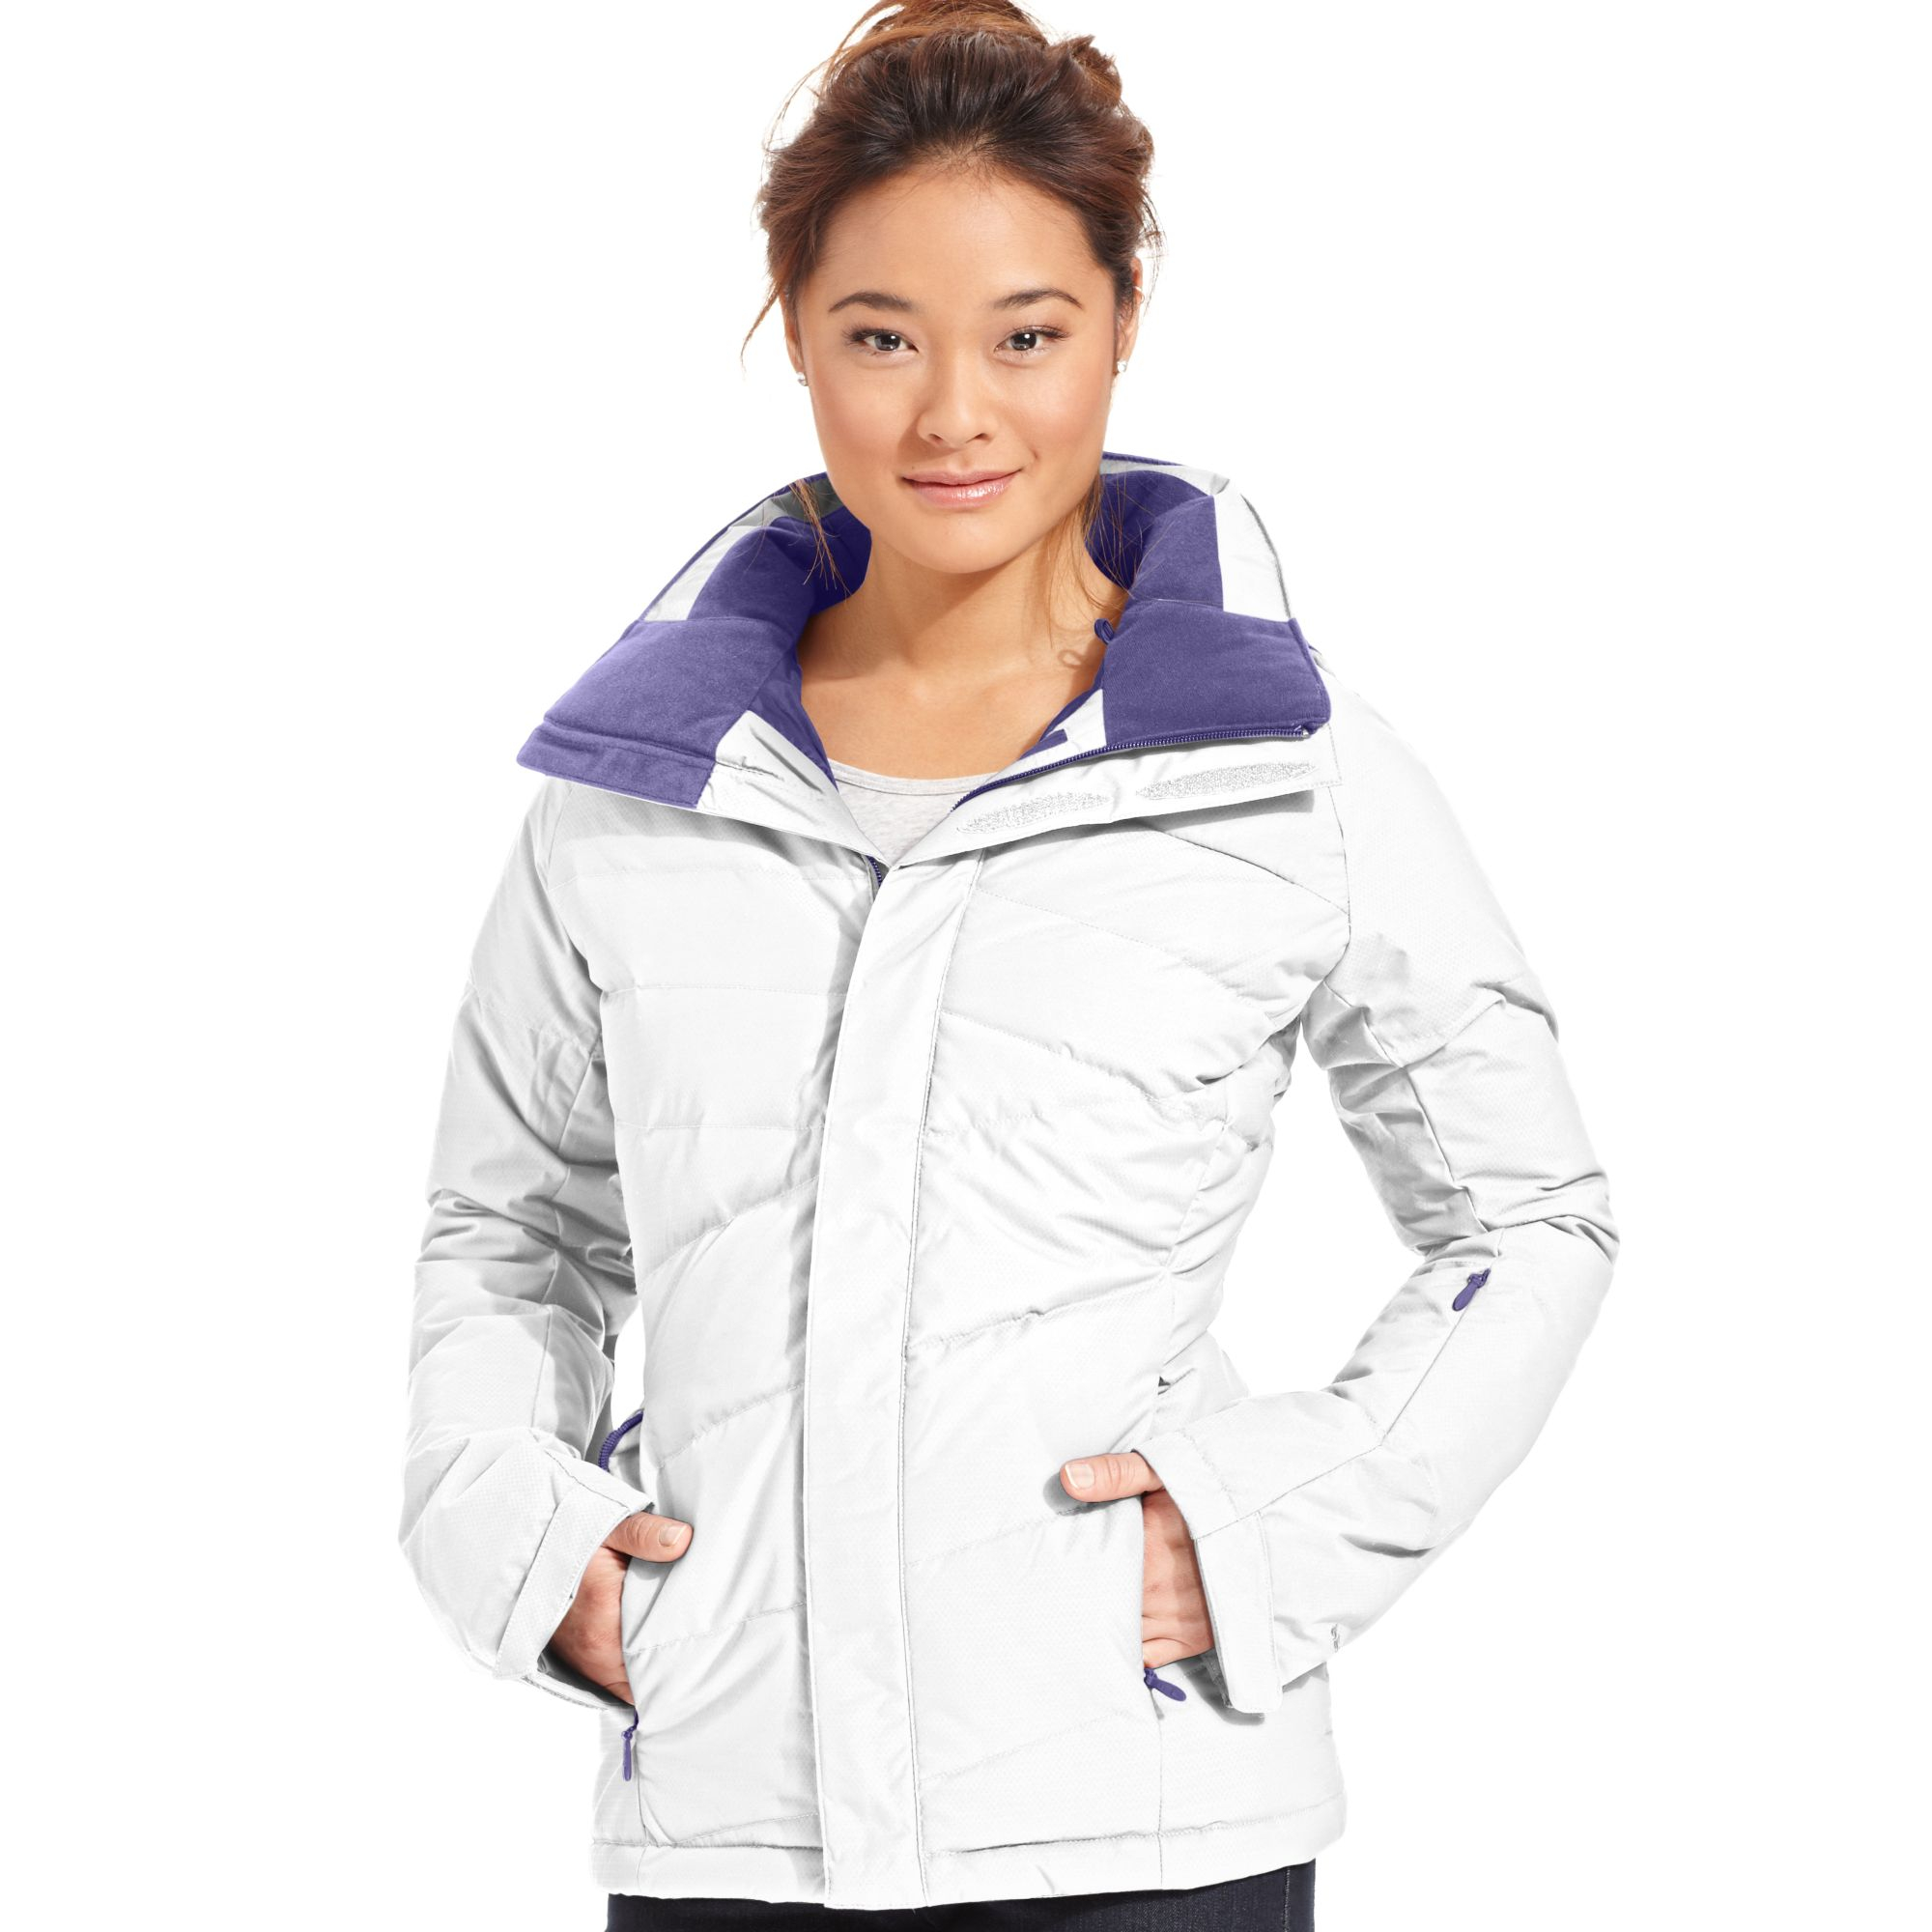 Lyst - The North Face Heavenly Down Quilted Puffer Ski Jacket in White ec225abab